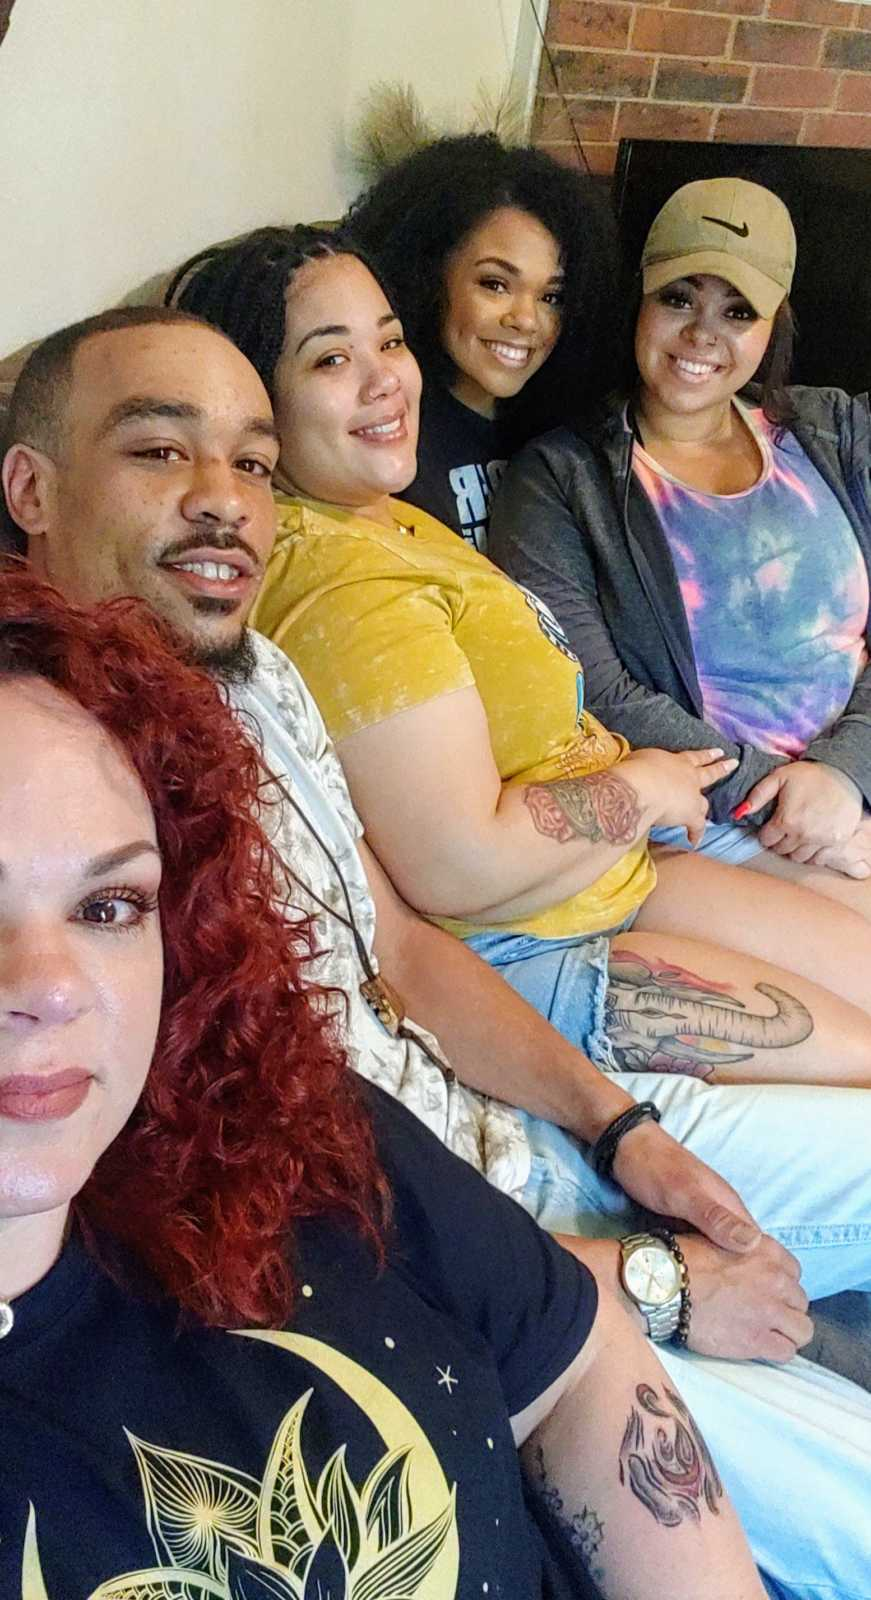 An adoptee with his birth mother and biological sisters on a couch